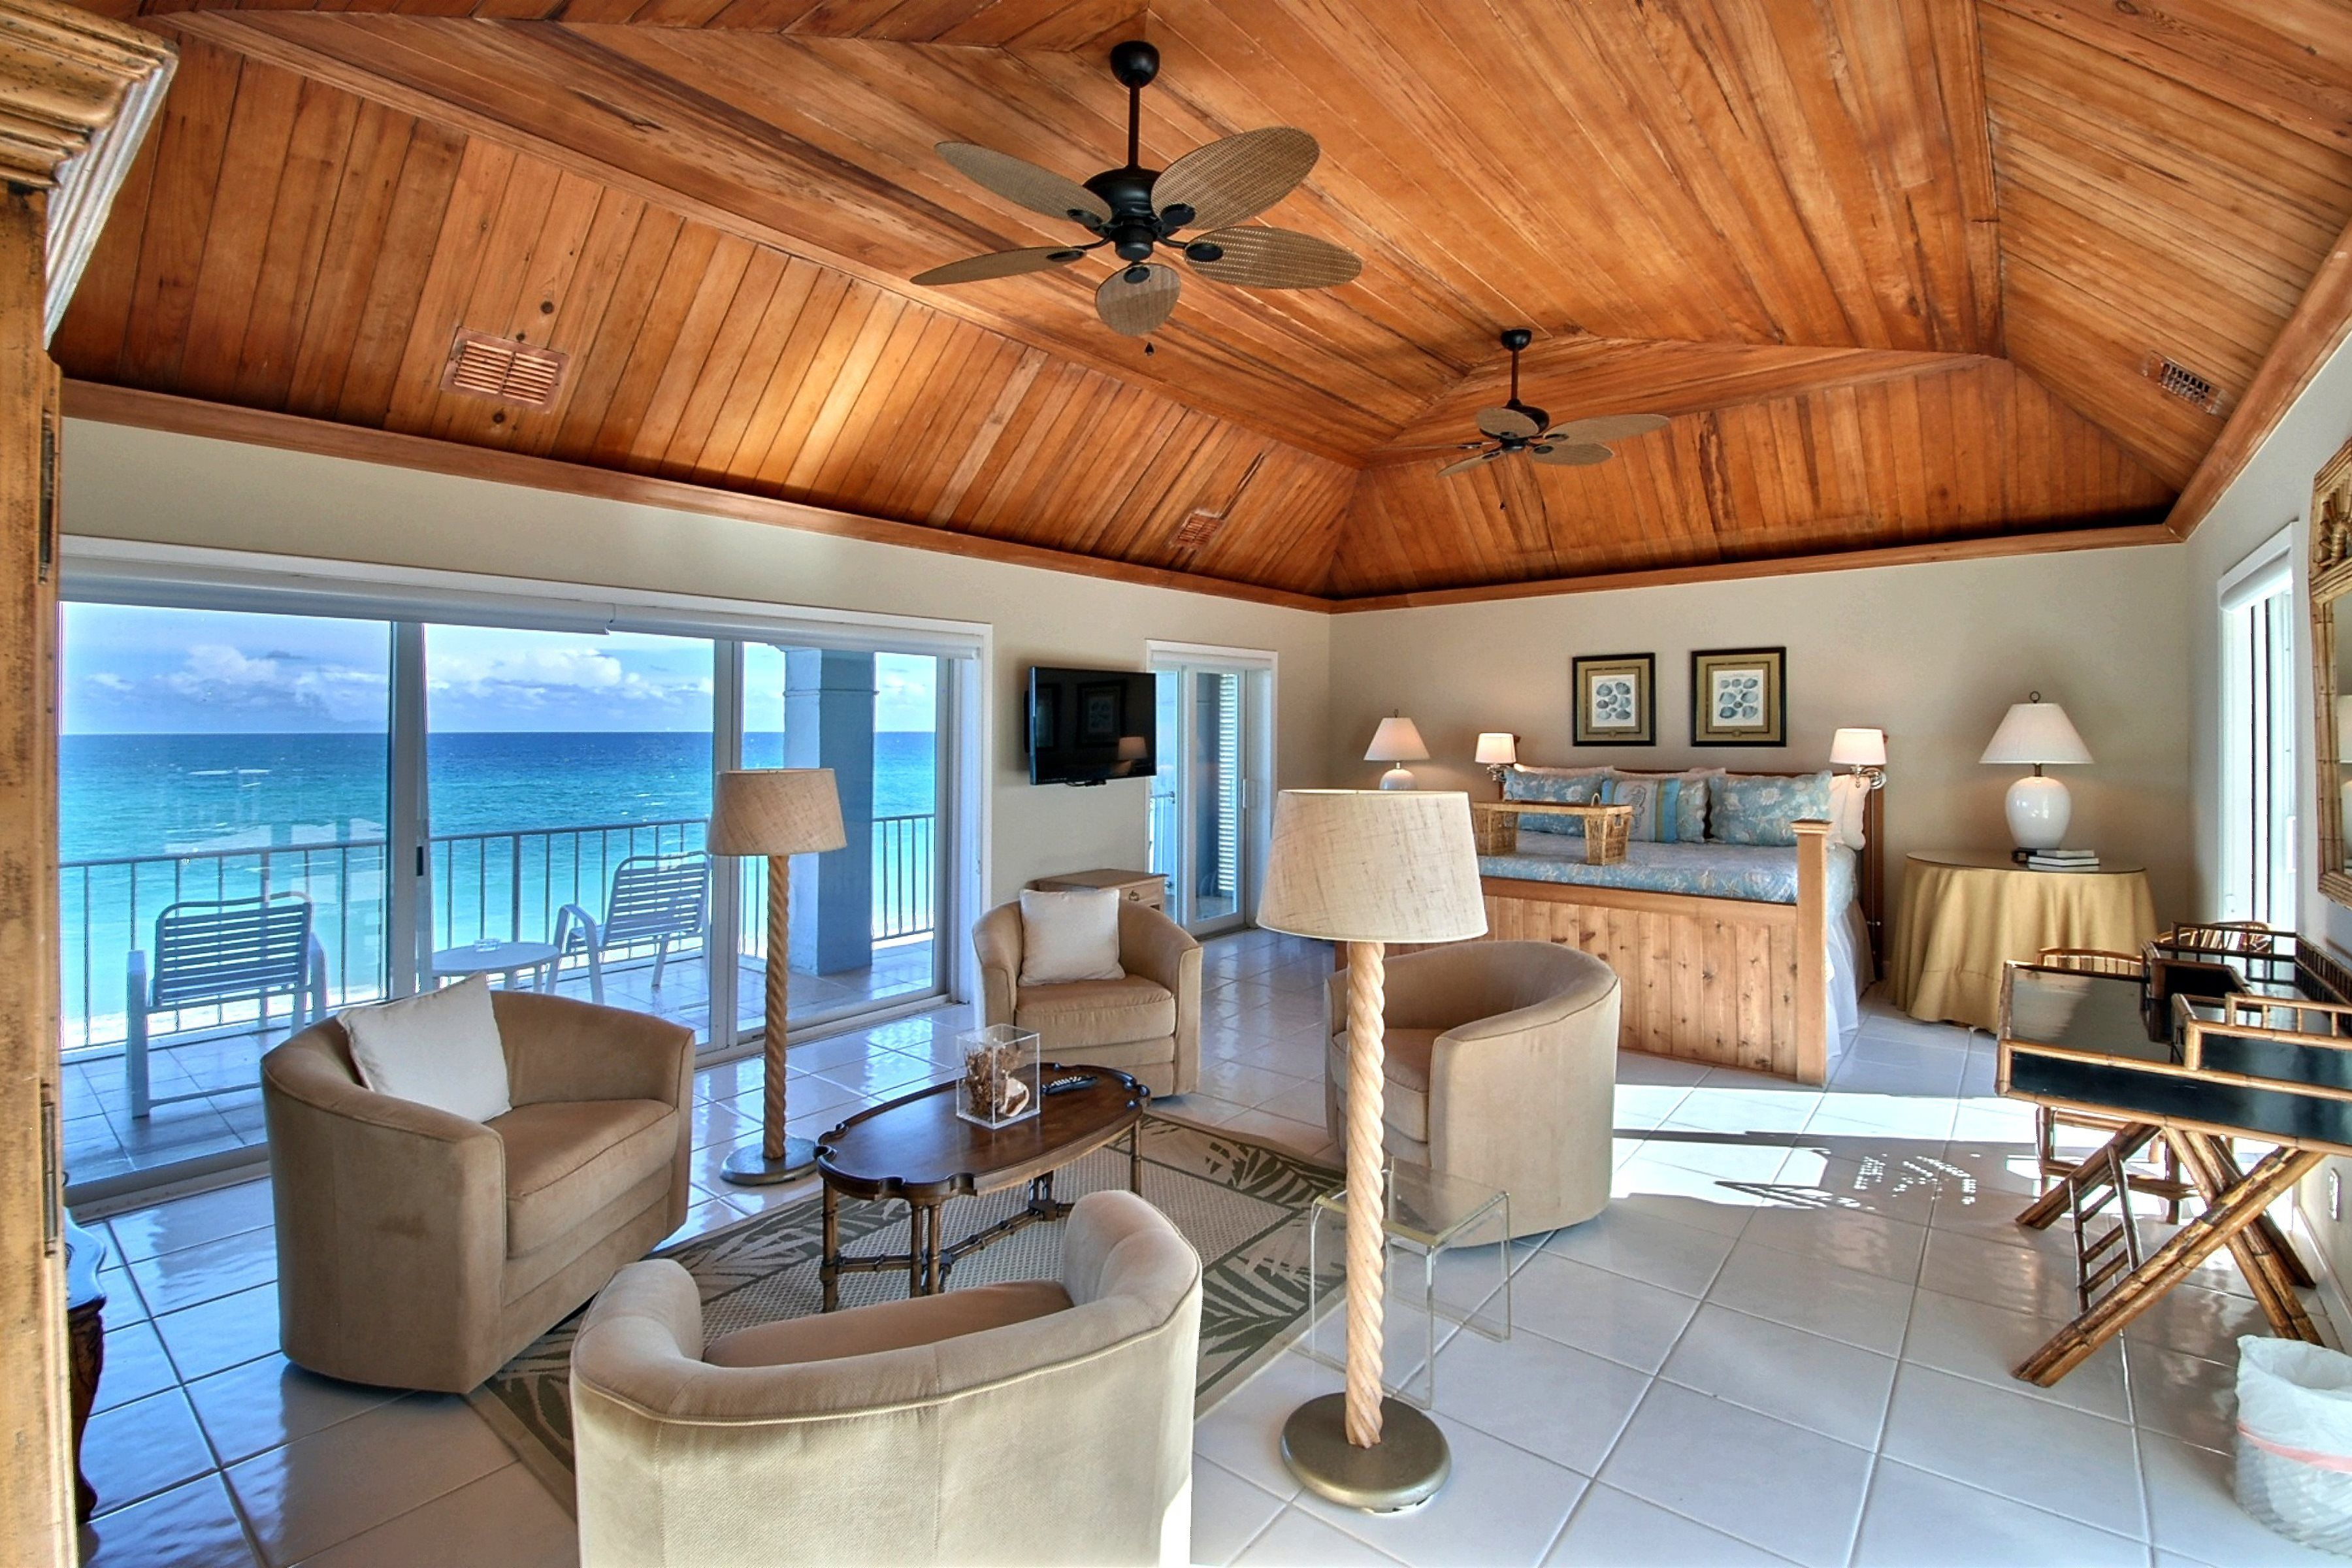 Beachfront Florida Mansion For Rent In Broward County Hillsboro Mile Fort Lauderdale Beach Area 951 A1a Hi Mansions For Rent Florida Mansion Renting A House